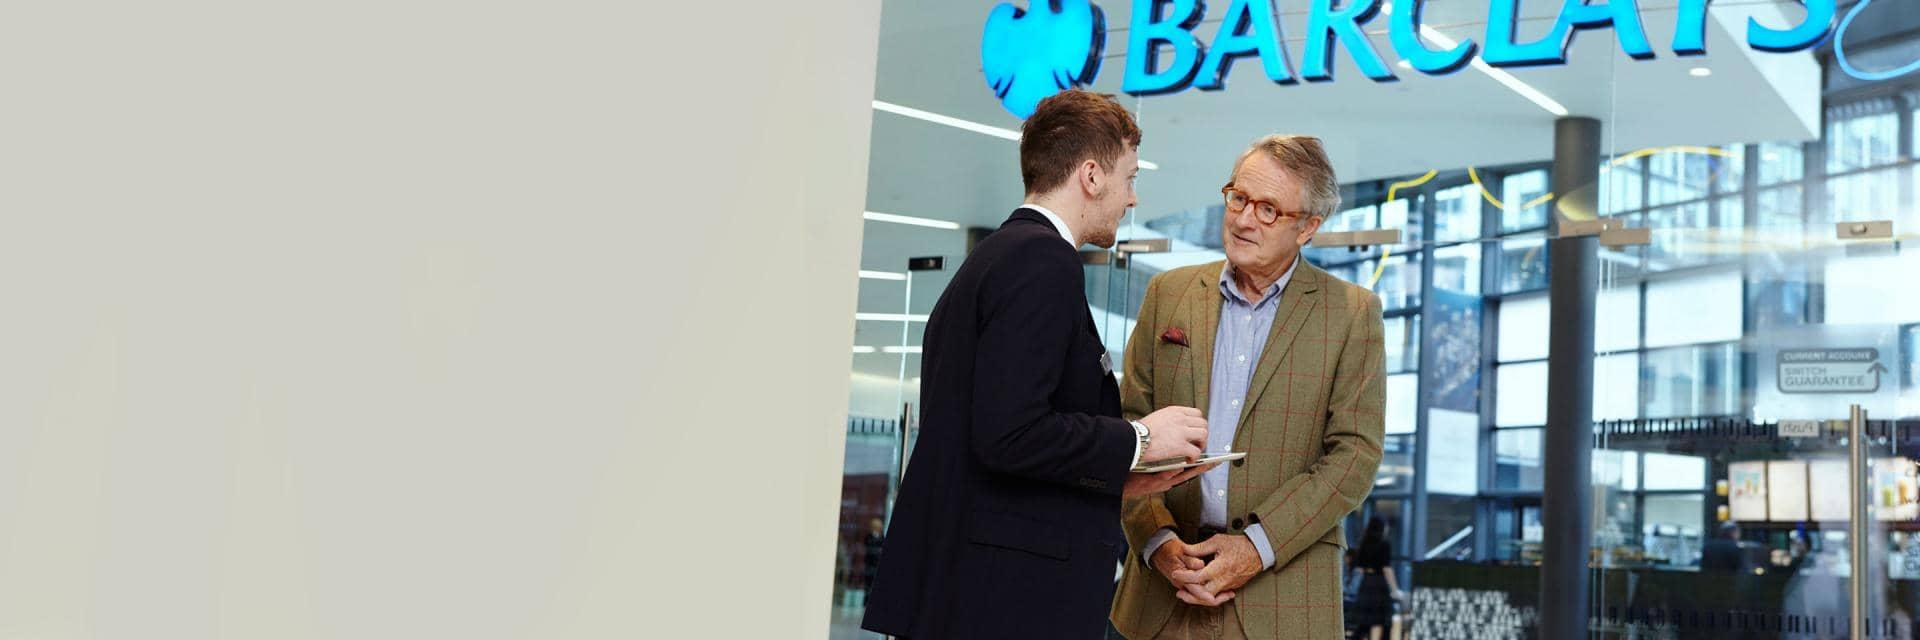 Joining Barclays in branch | Barclays